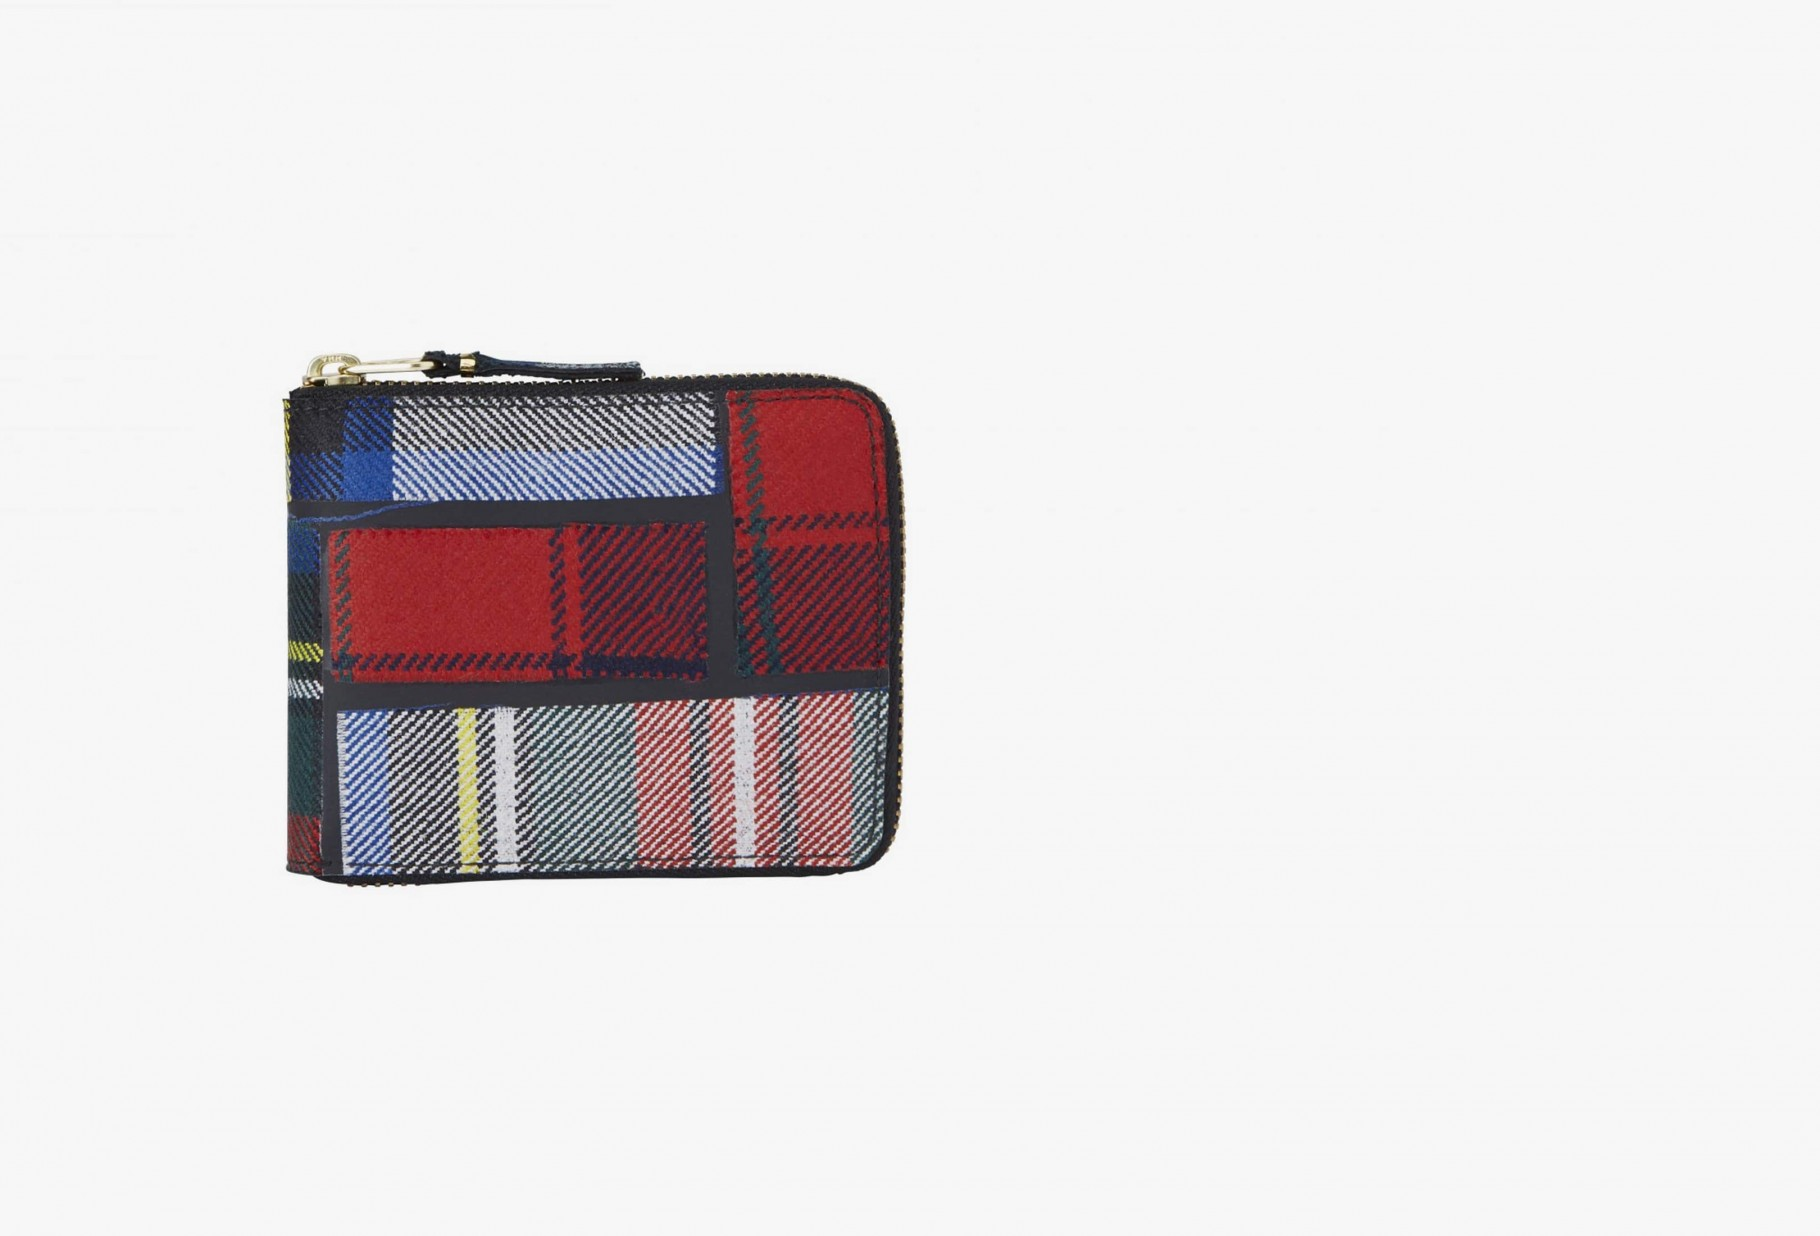 CDG WALLETS / Cdg wallet tartan sa7100tp Red